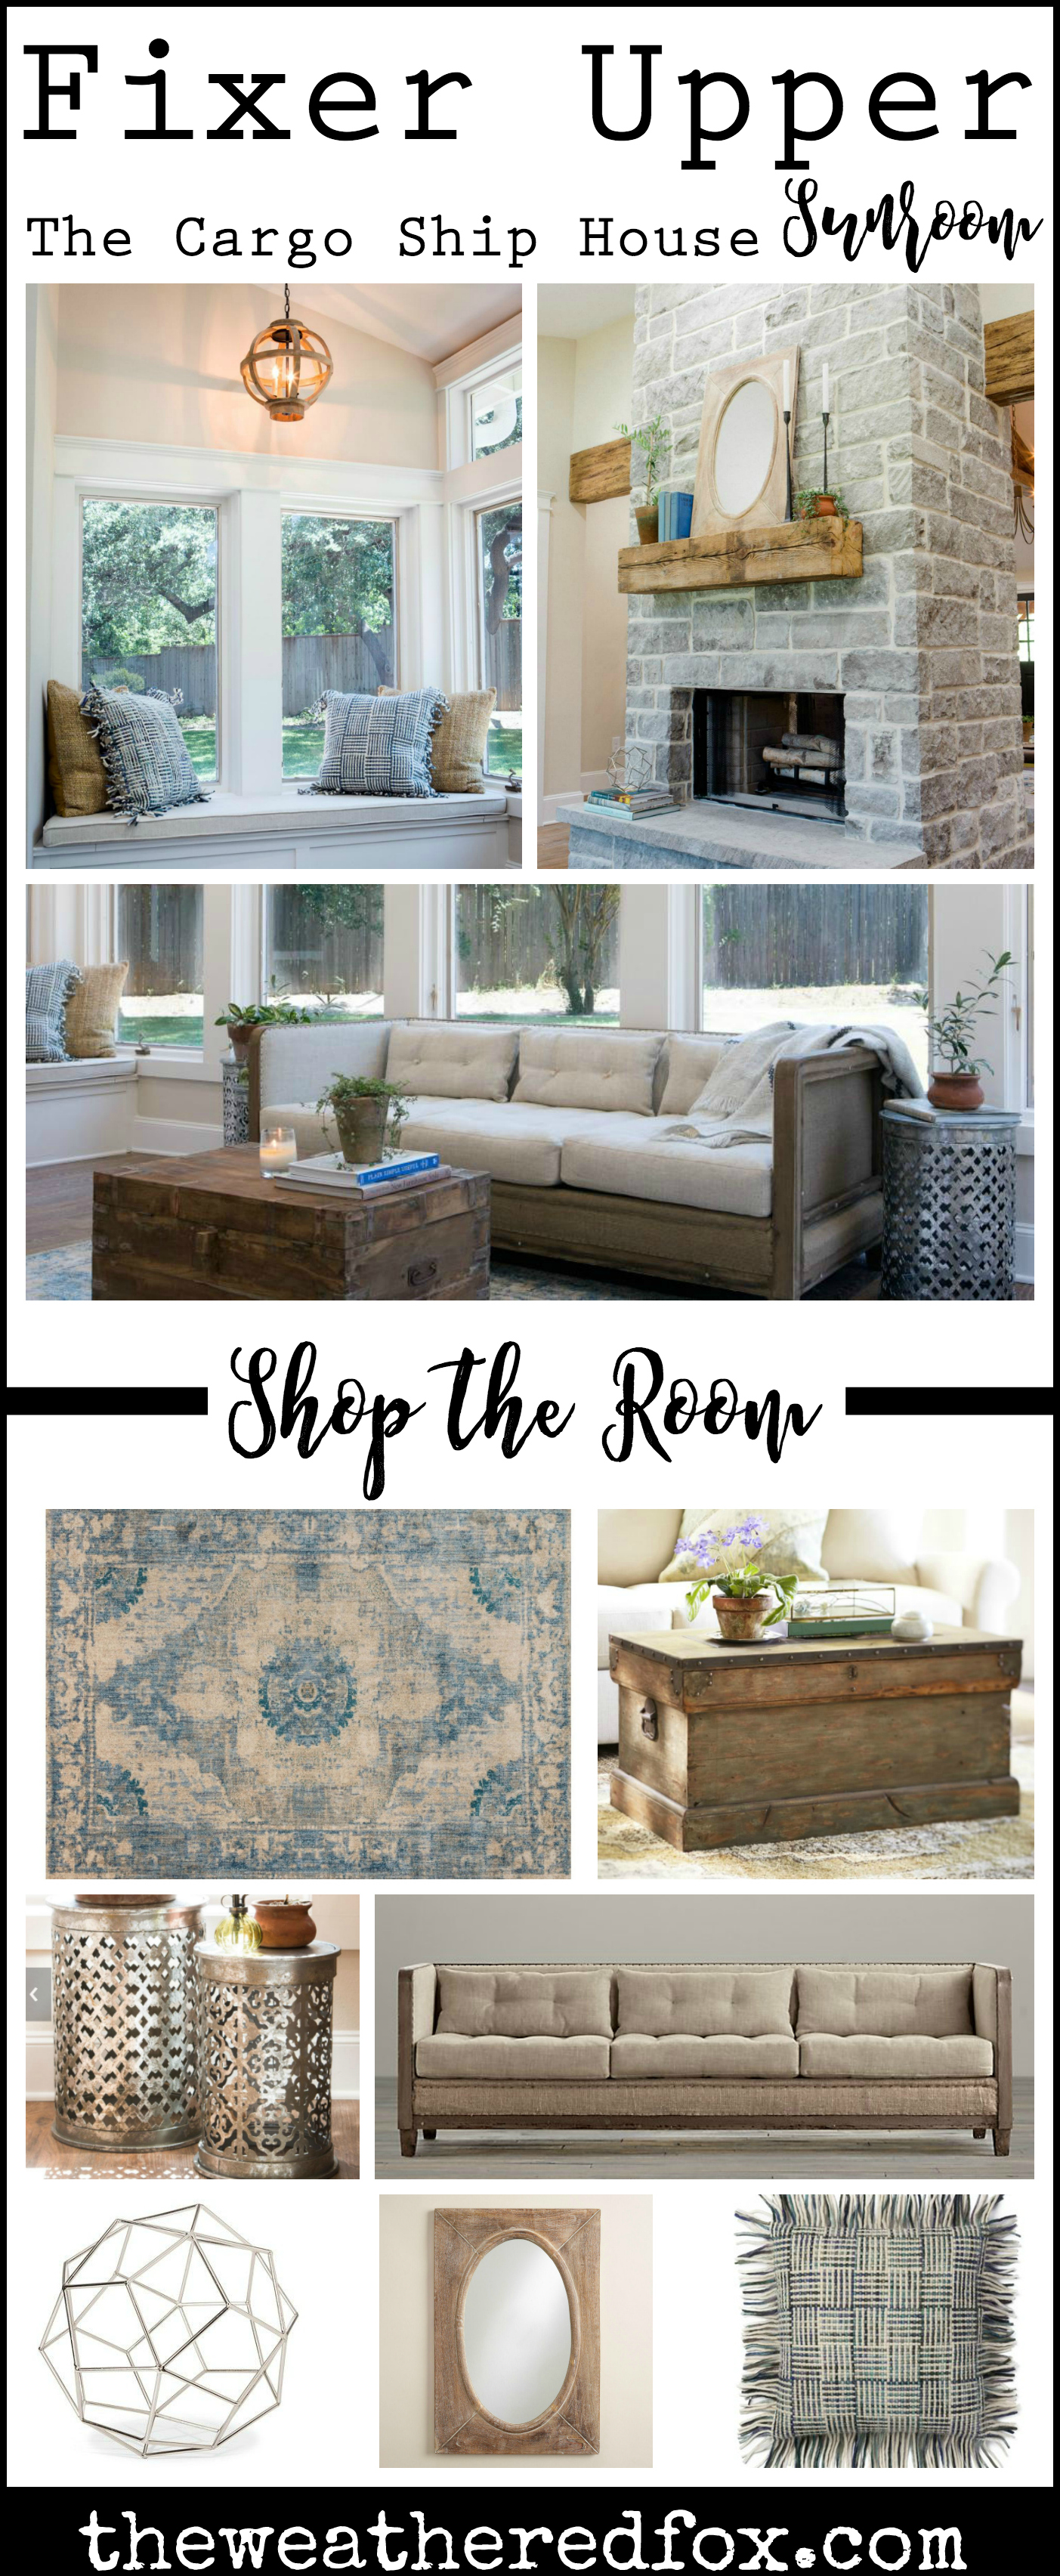 Find the exact product used for Fixer Upper Season 4.